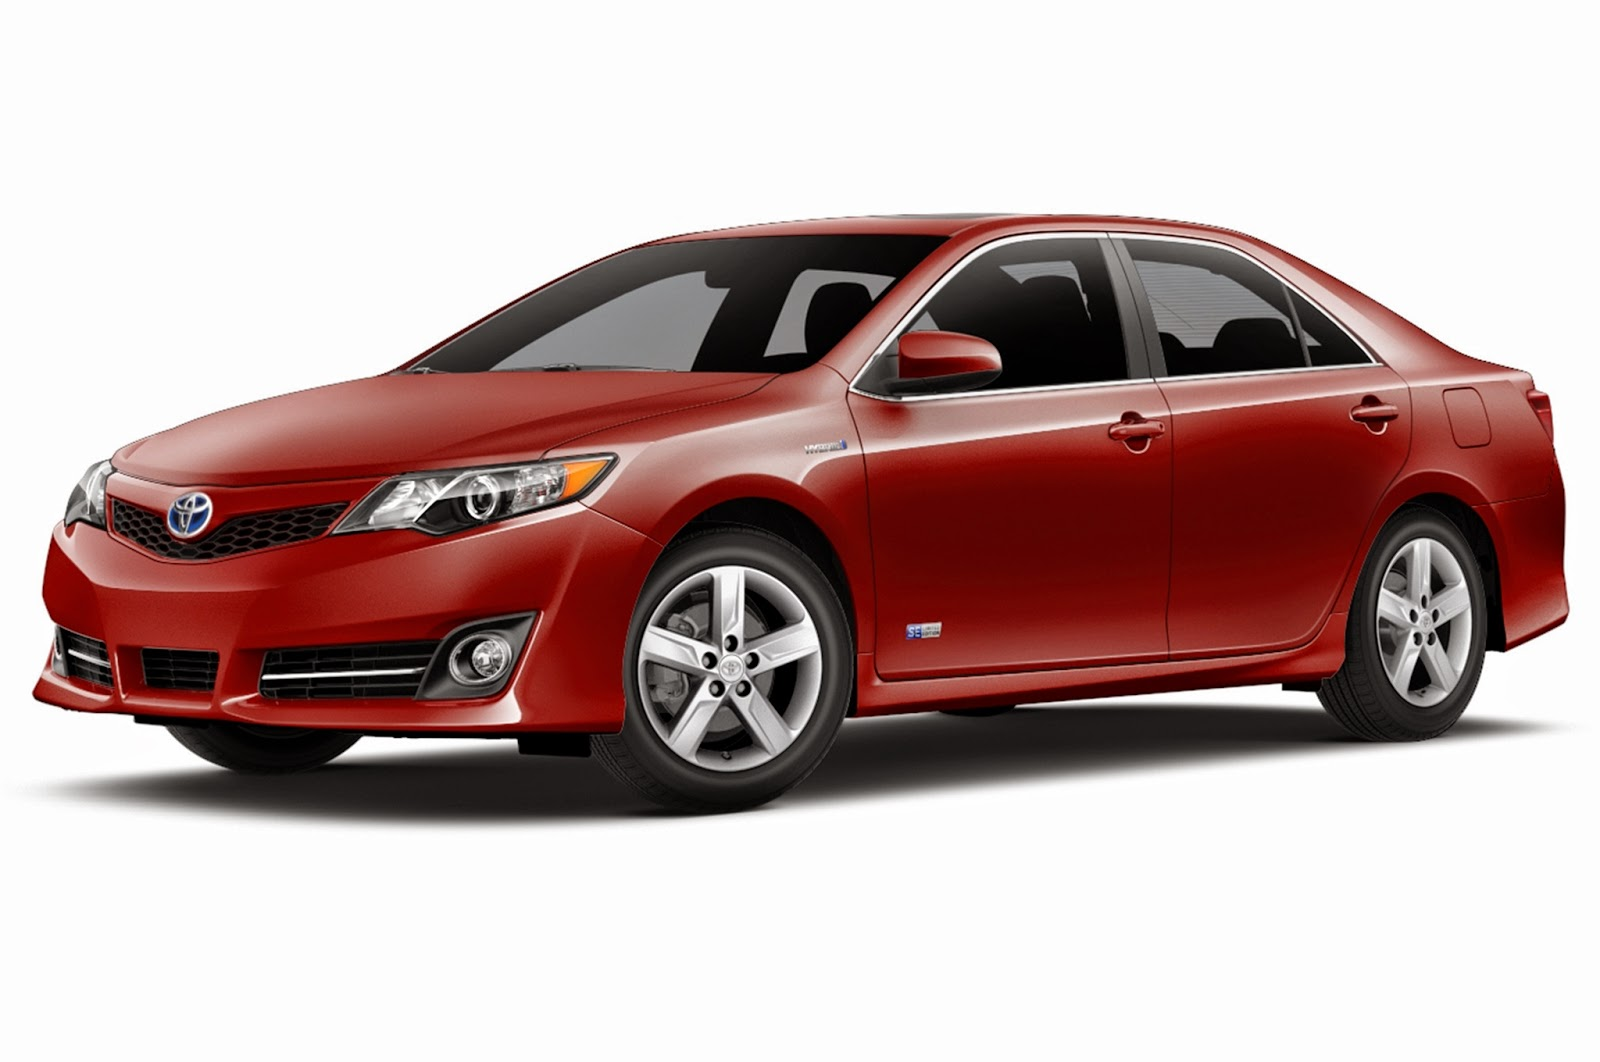 get info cars 2014 toyota camry owners manual pdf rh pa ica blogspot com 2015 toyota camry owners manual 2012 toyota camry owners manual pdf